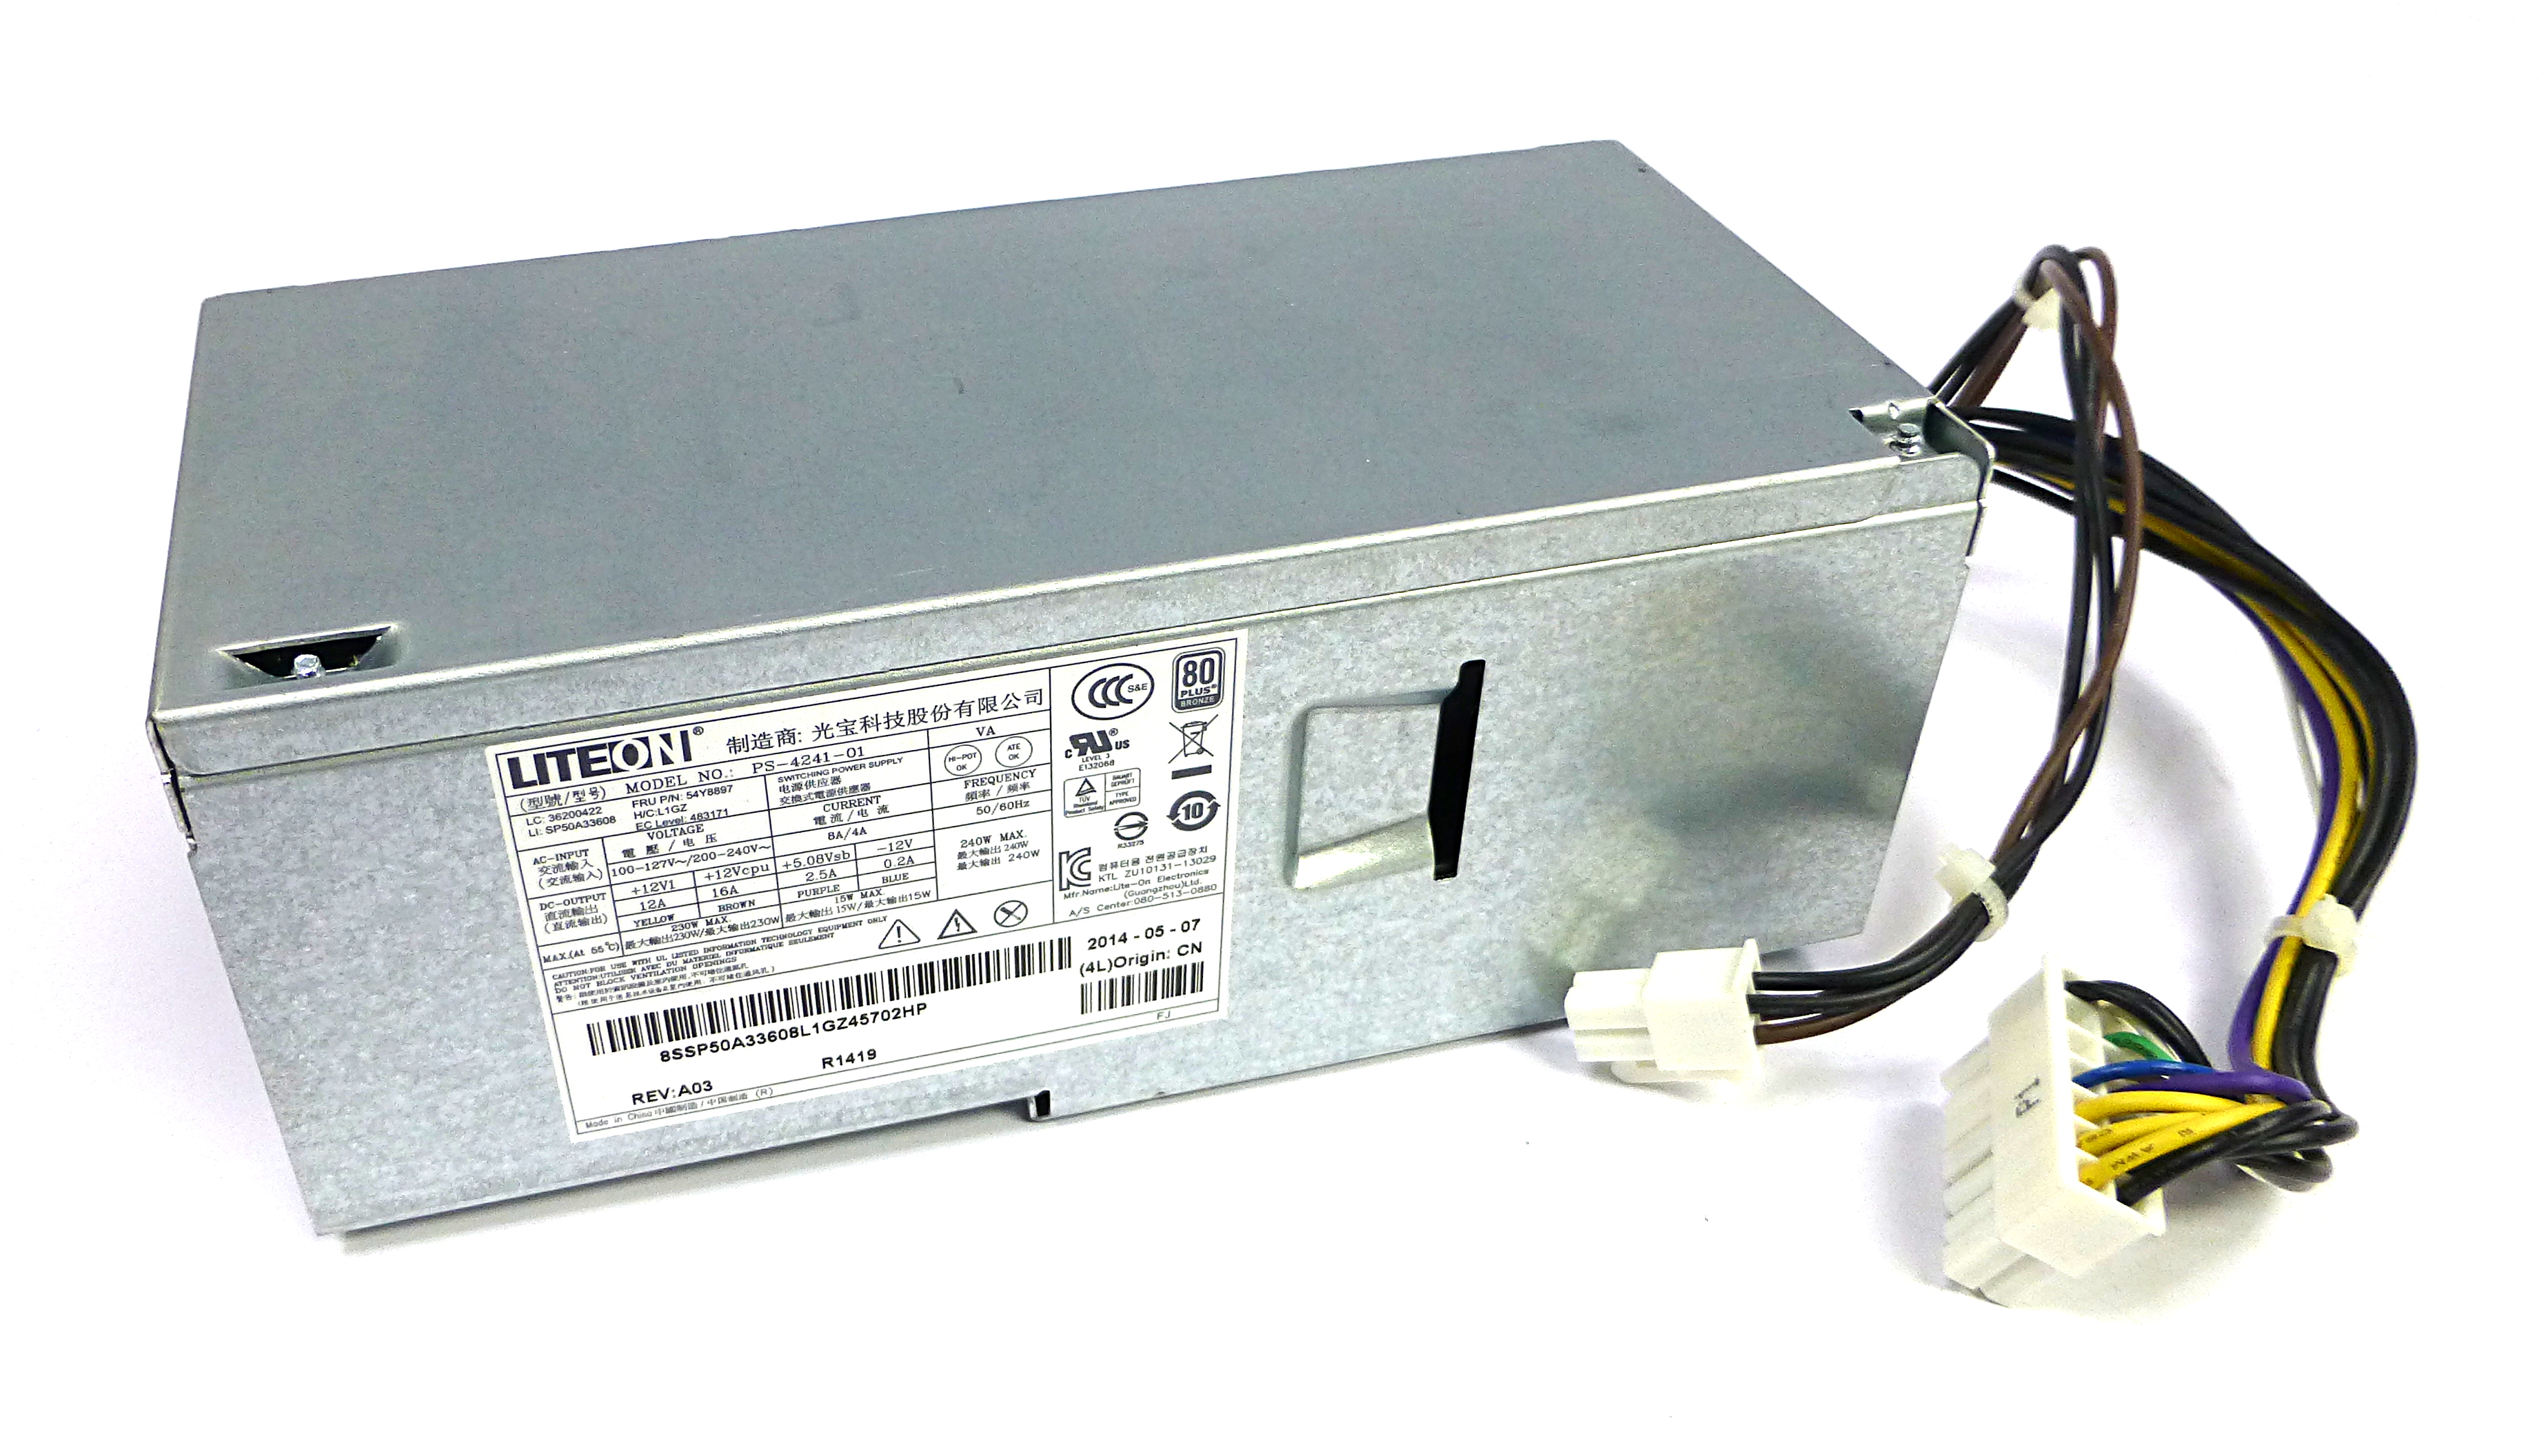 Lenovo 54Y8921 Lite-On PS-4241-01 240W Power Supply For ThinkCentre PC